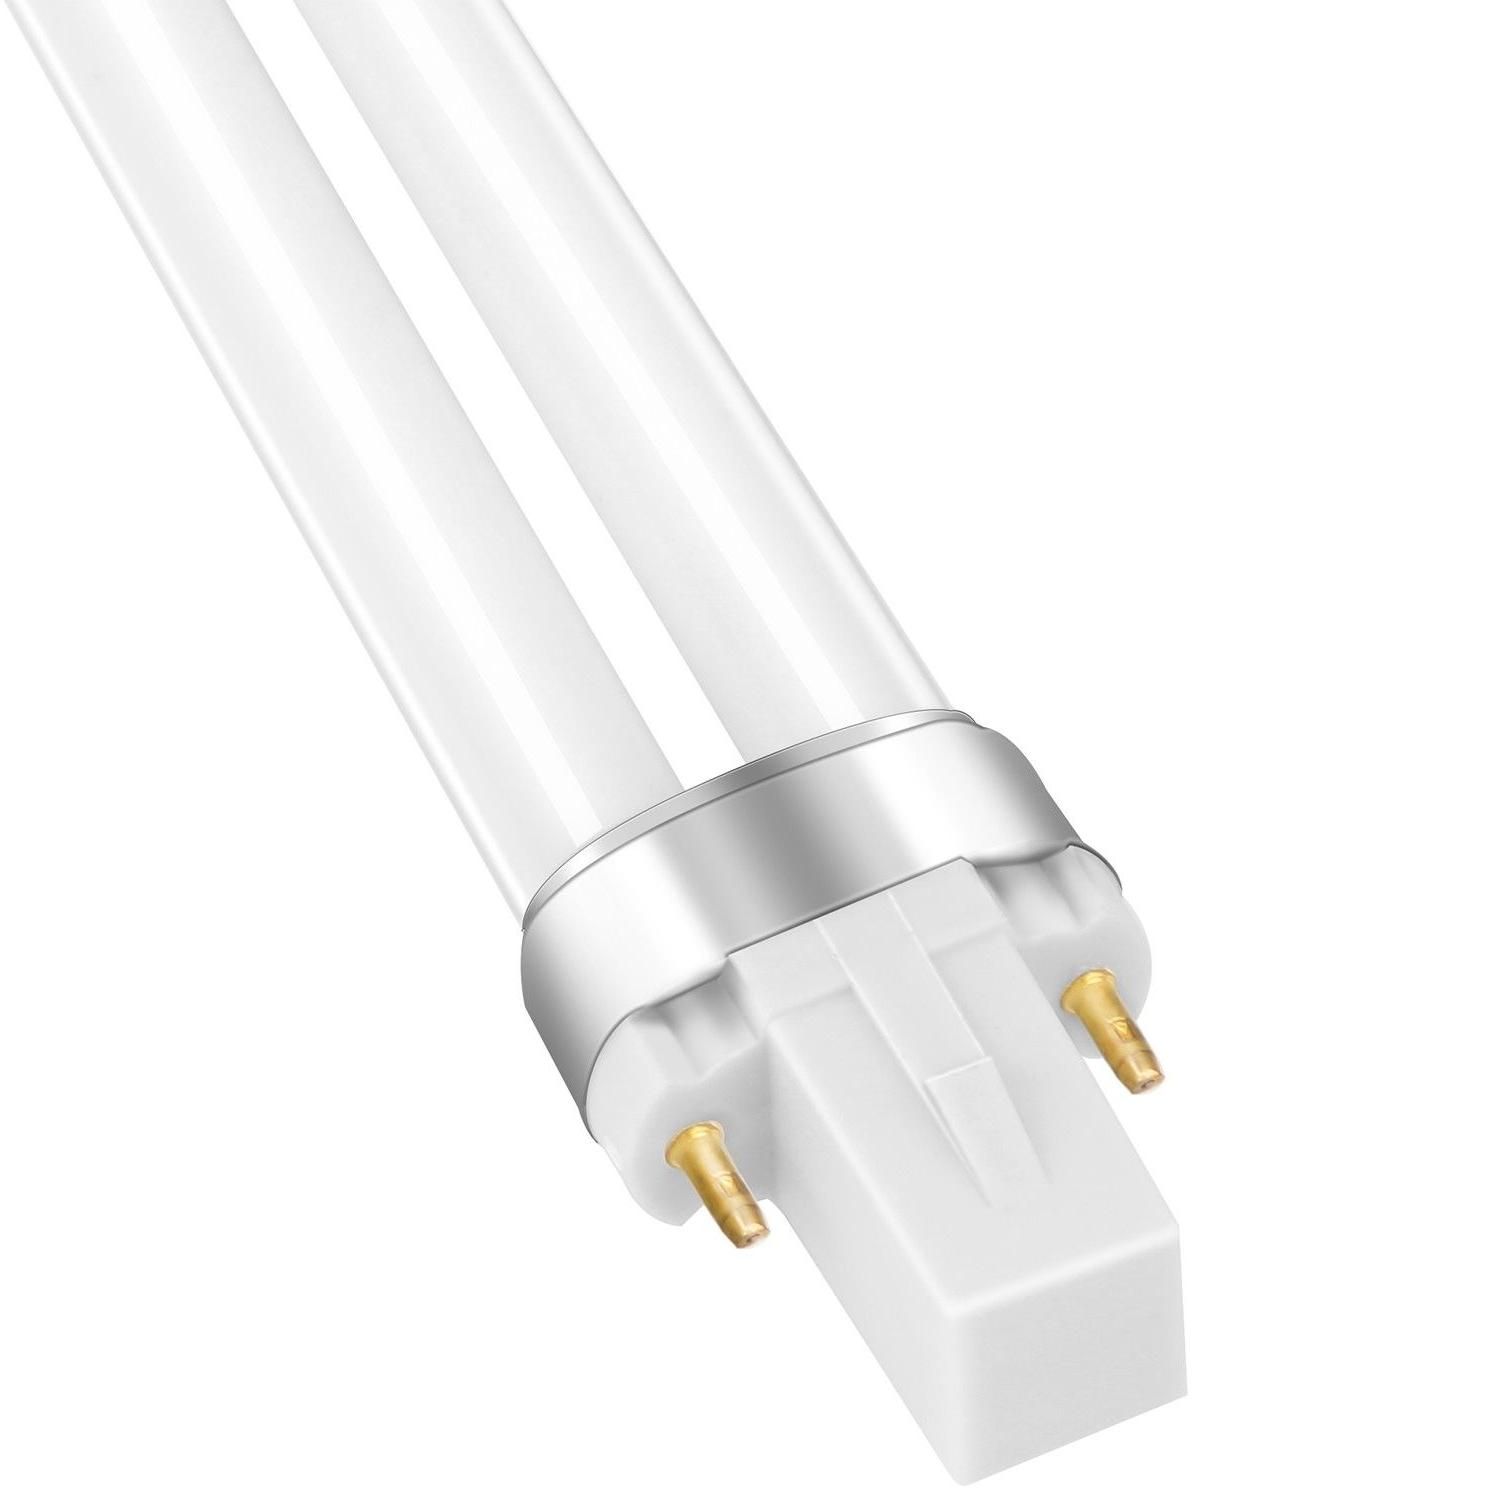 9W Nail U-shaped Gel Curing Replacement Bulb